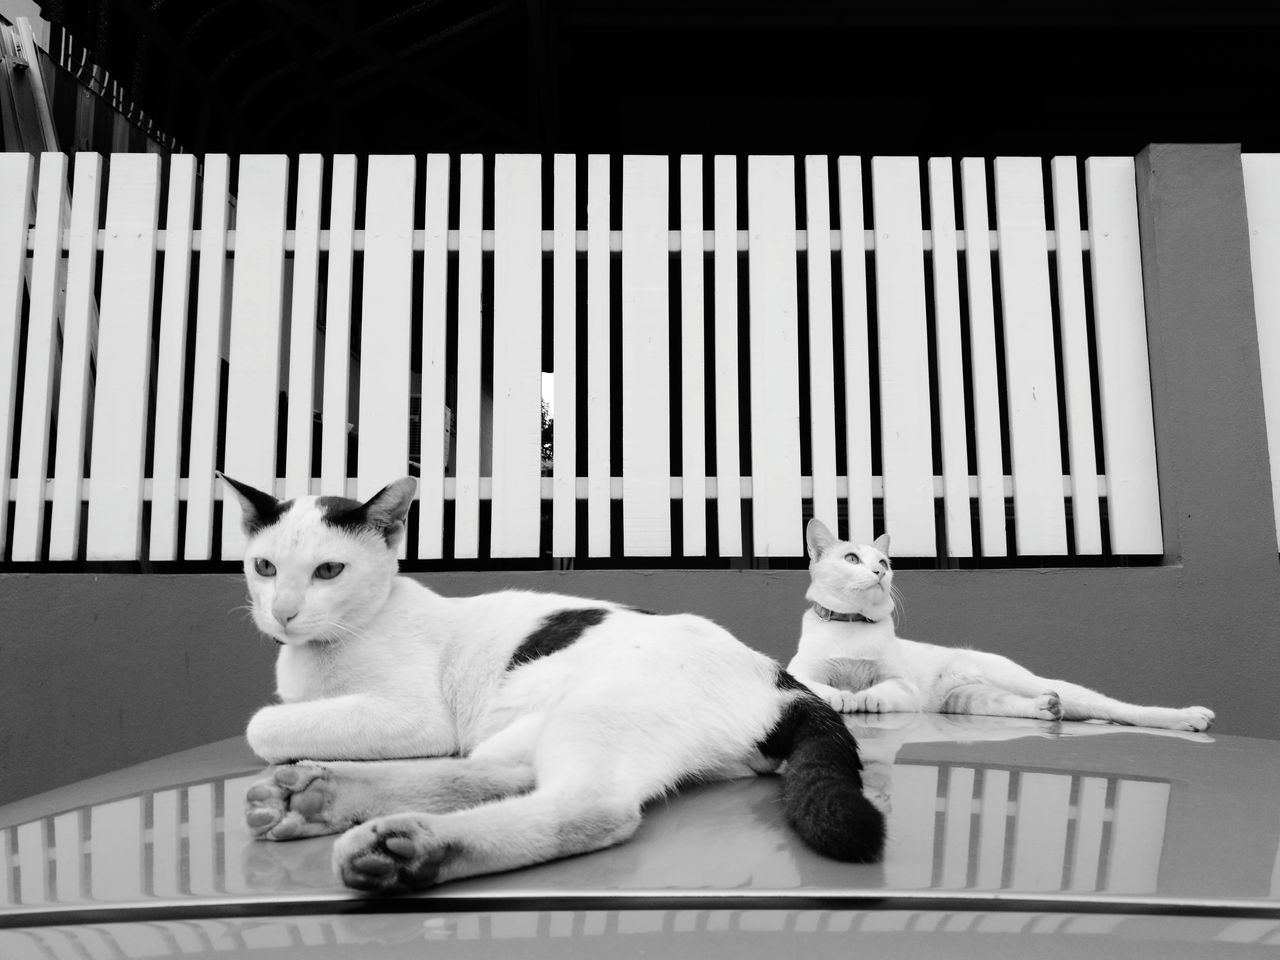 Pets No People Day Animal Themes Outdoors Catlover Cats Of EyeEm Catholic Catsagram HuaweiP9 Sky Cat On Car Roof Animal Bw_collection Bw_lover Bw_shotz